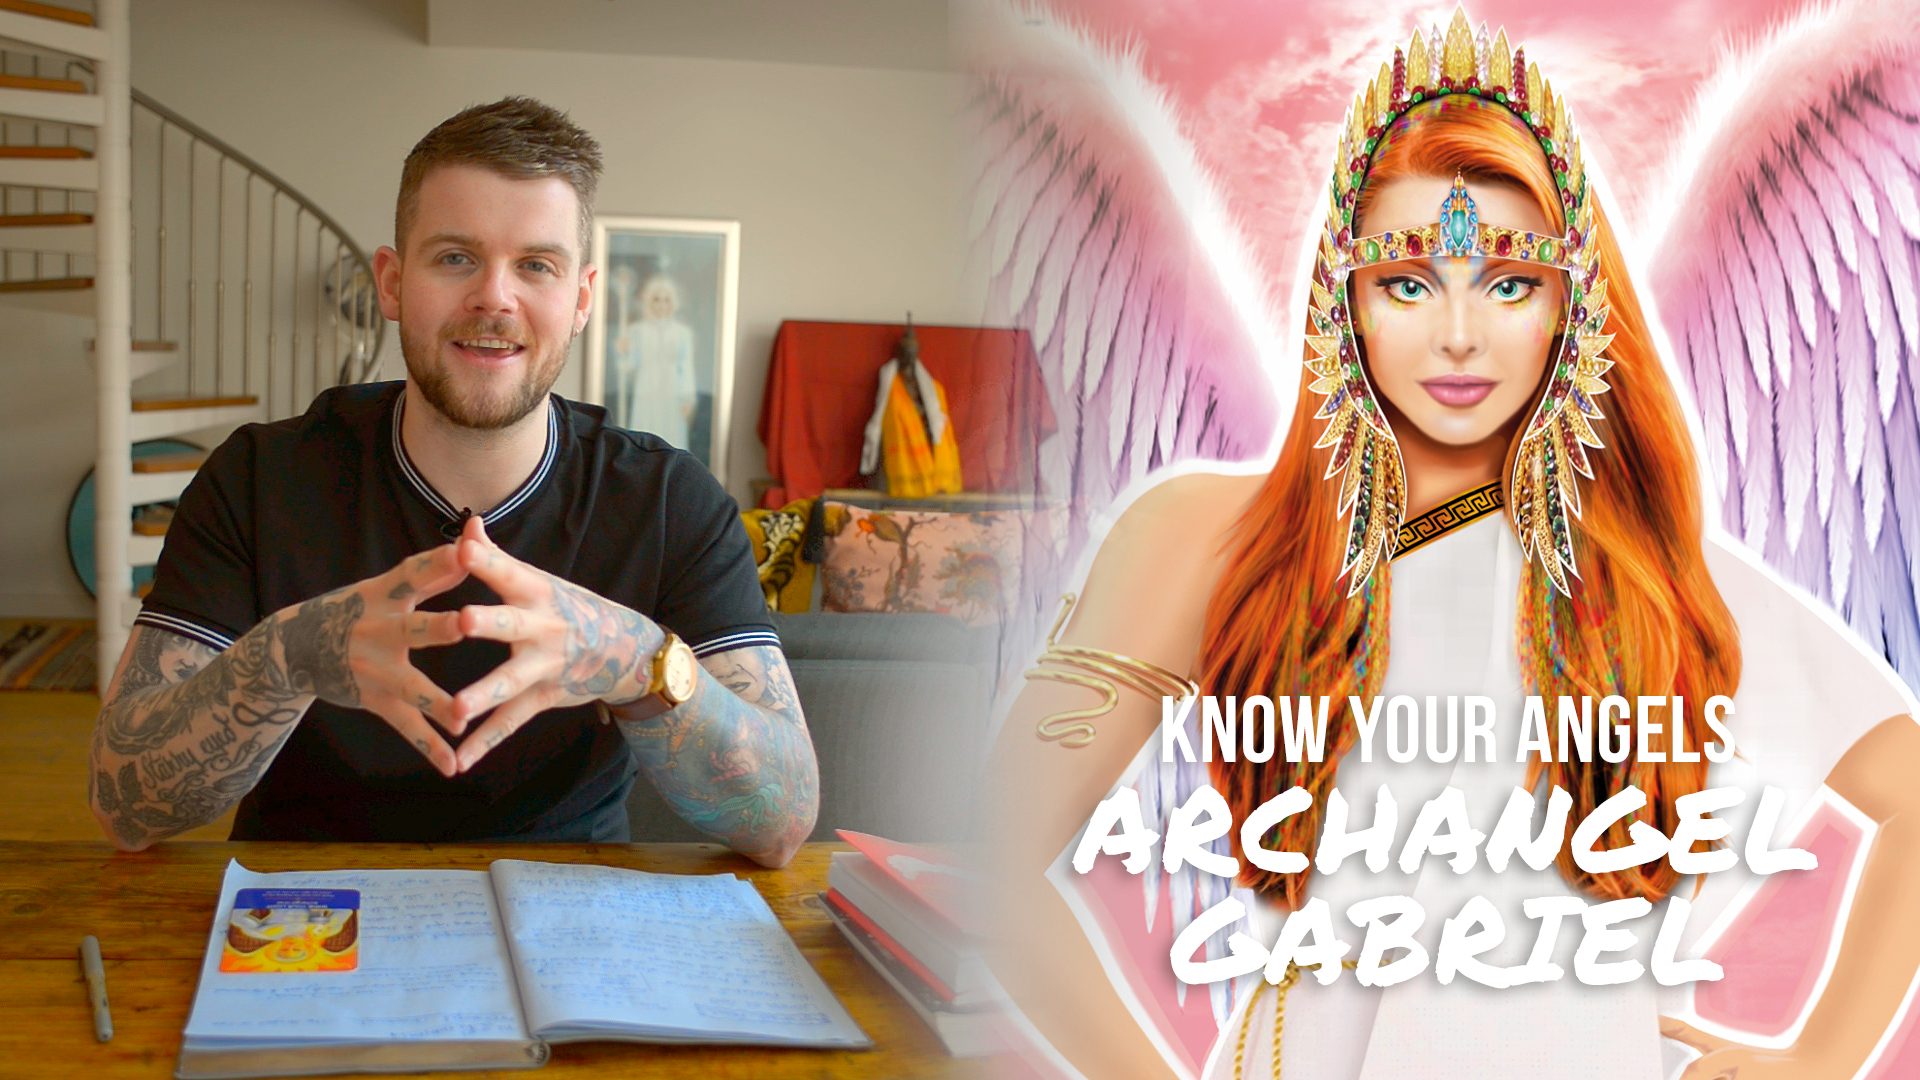 know_your_angels_thumbnail_4_Gabriel.jpg